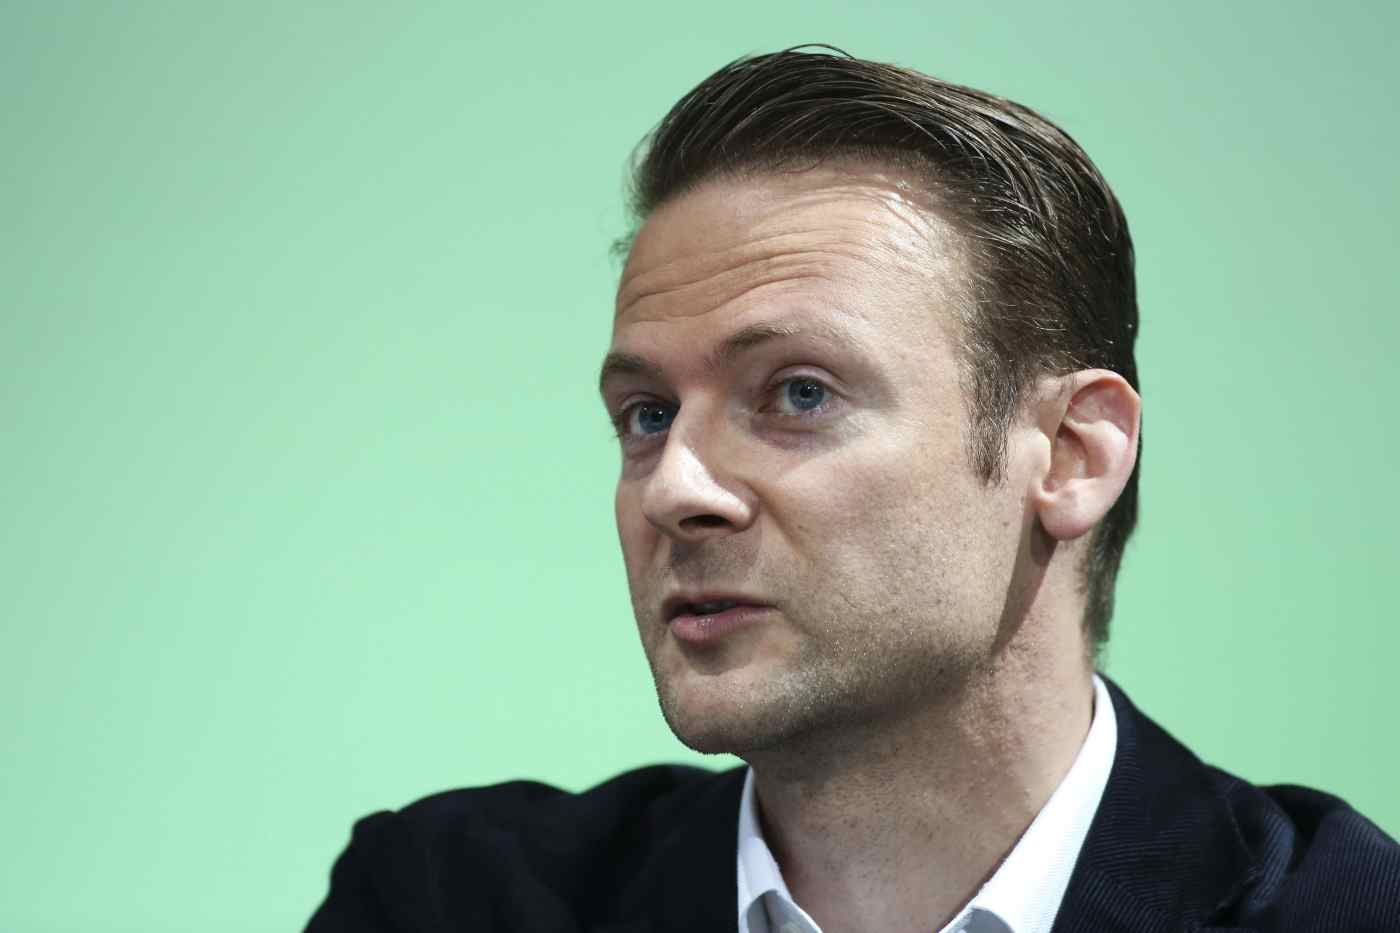 Jan Hammer, partner at Index Ventures, speaks during a panel session in London, U.K., on Thursday, July 10, 2014.